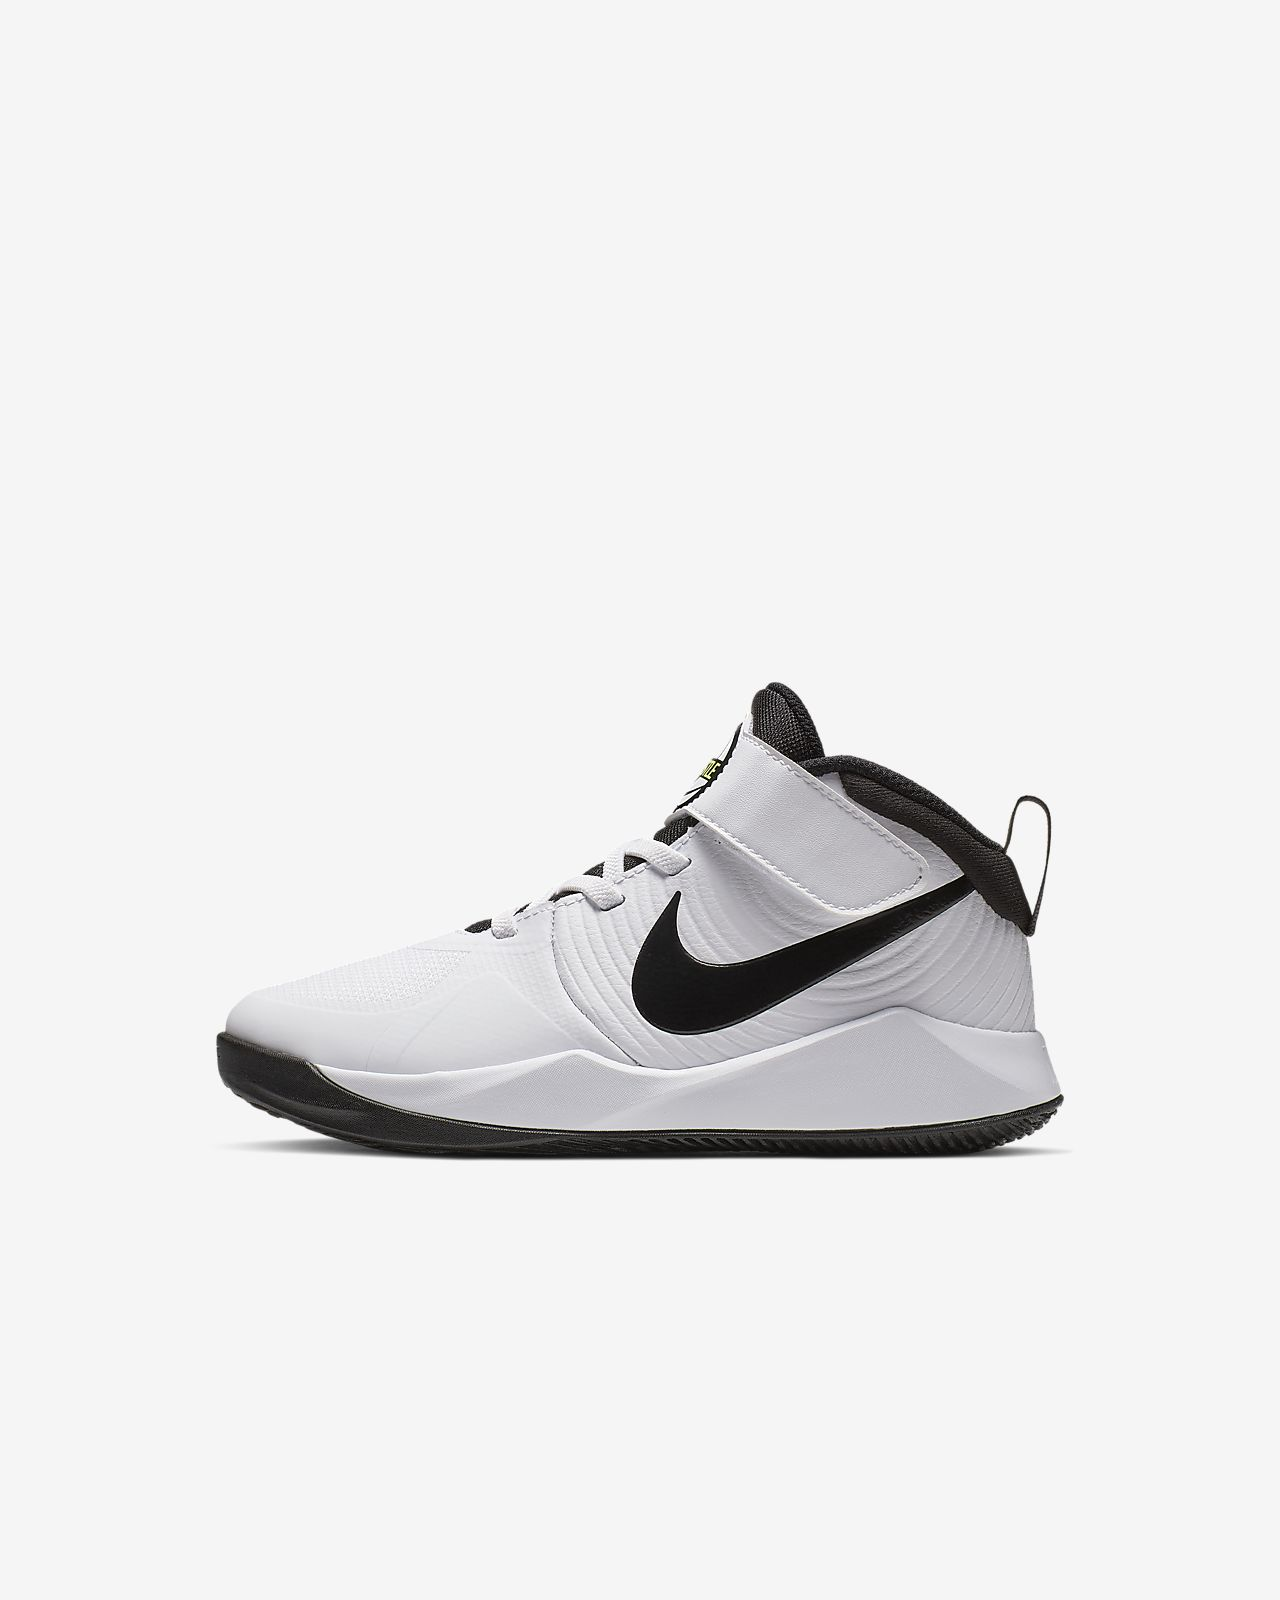 Nike Team Hustle D 9 Younger Kids' Shoe